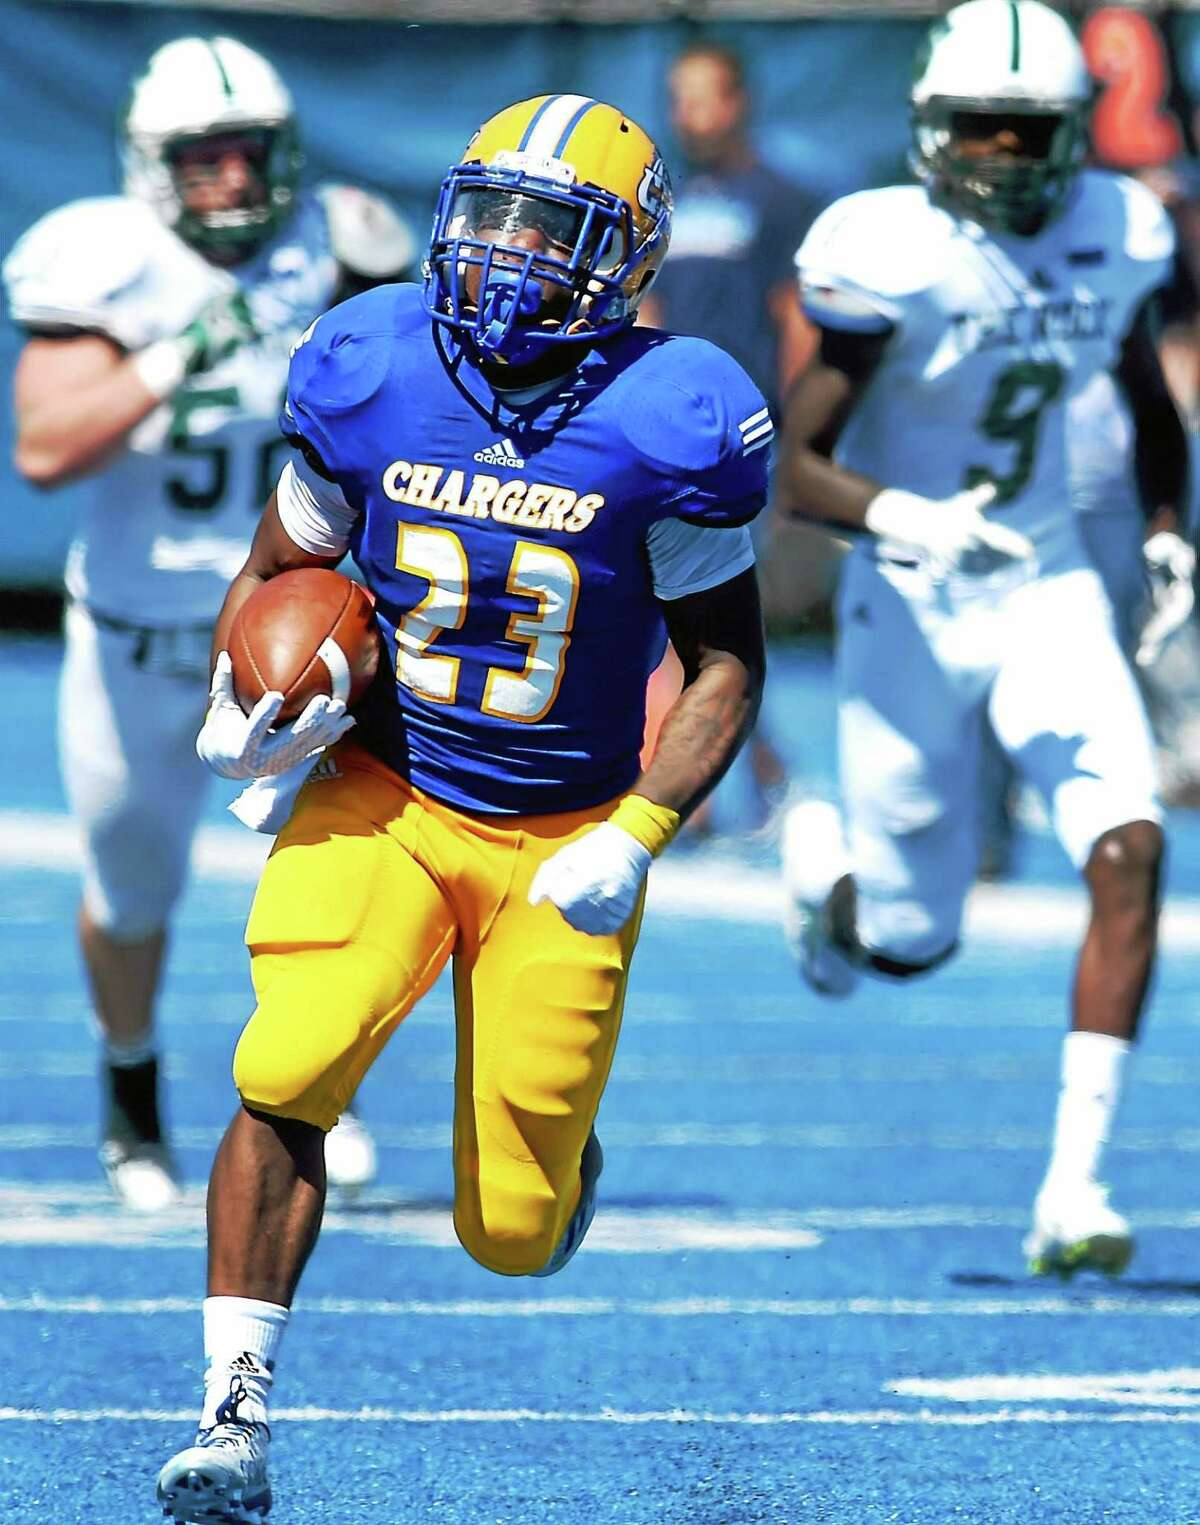 Andre Anderson of the University of New Haven.